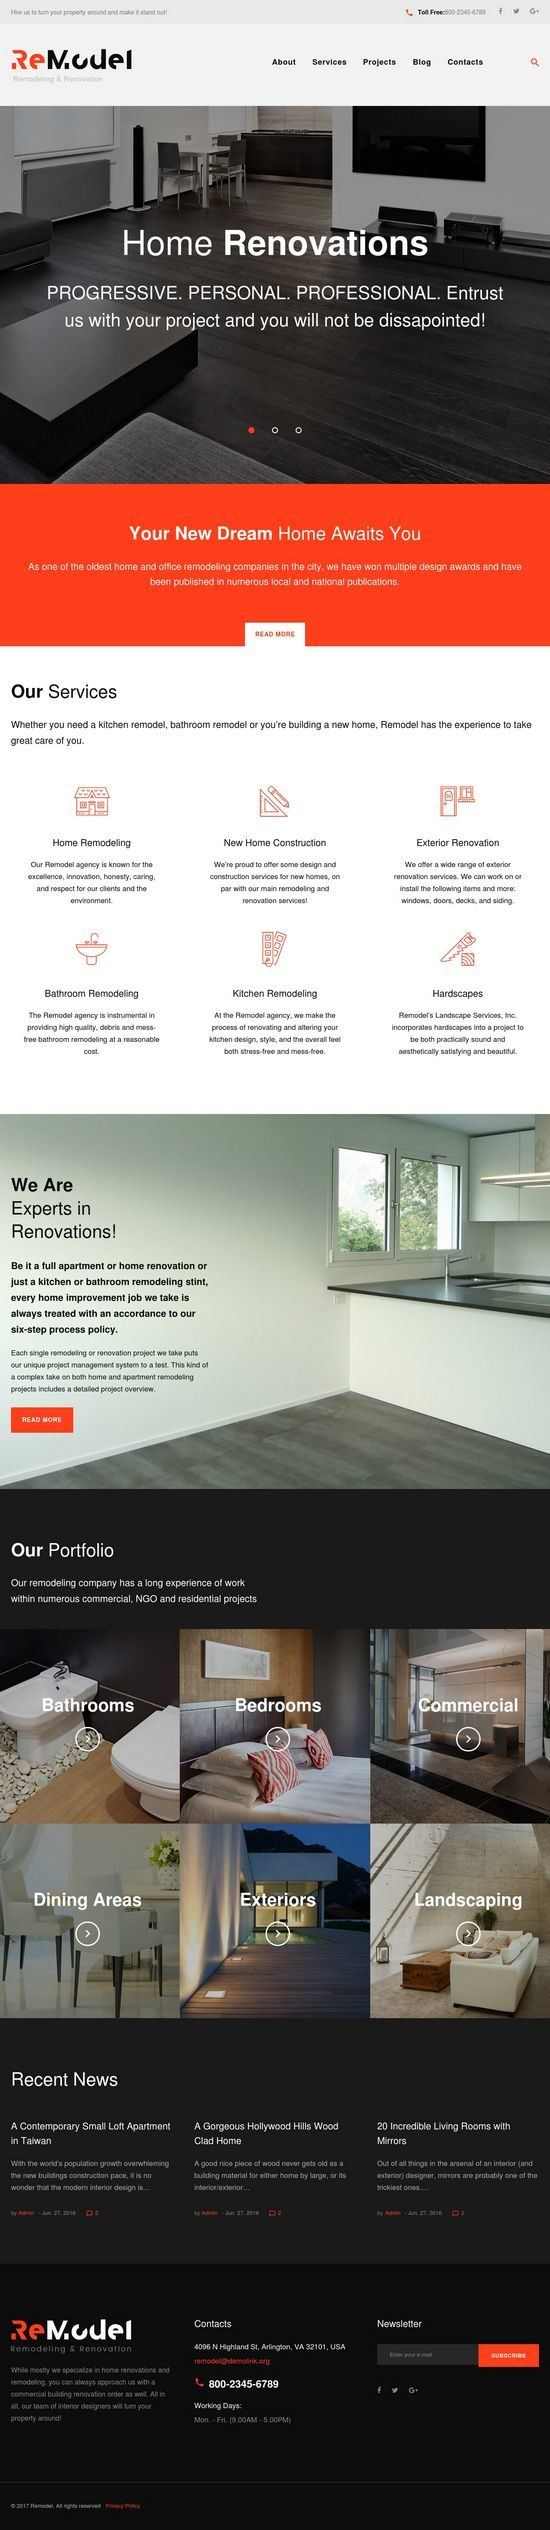 remodel interior design wordpress theme 01 550x2530 - Remodel WordPress Theme